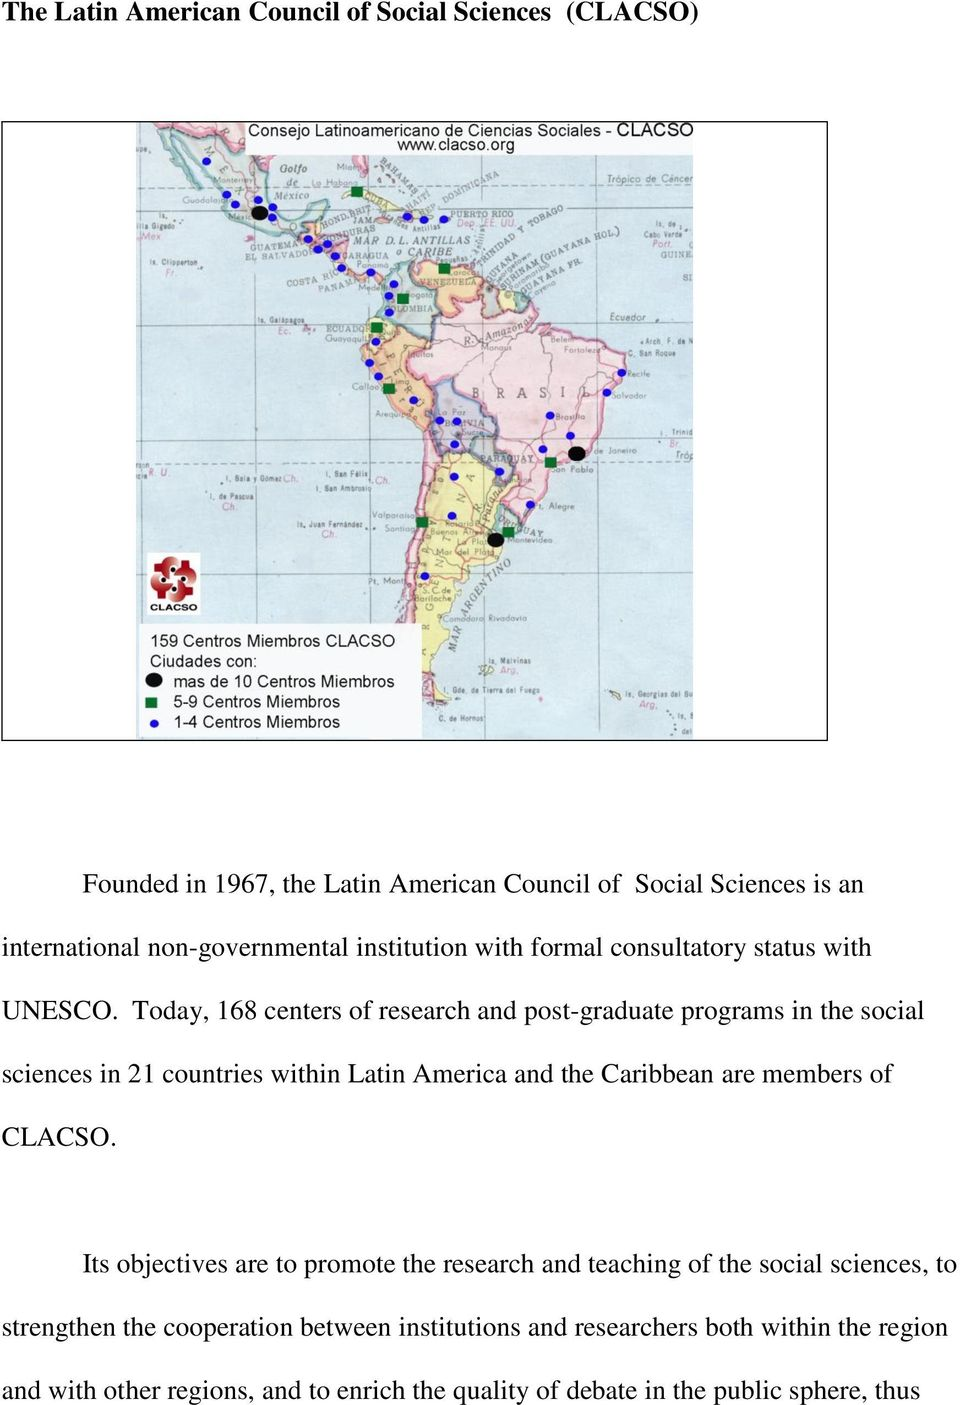 Today, 168 centers of research and post-graduate programs in the social sciences in 21 countries within Latin America and the Caribbean are members of